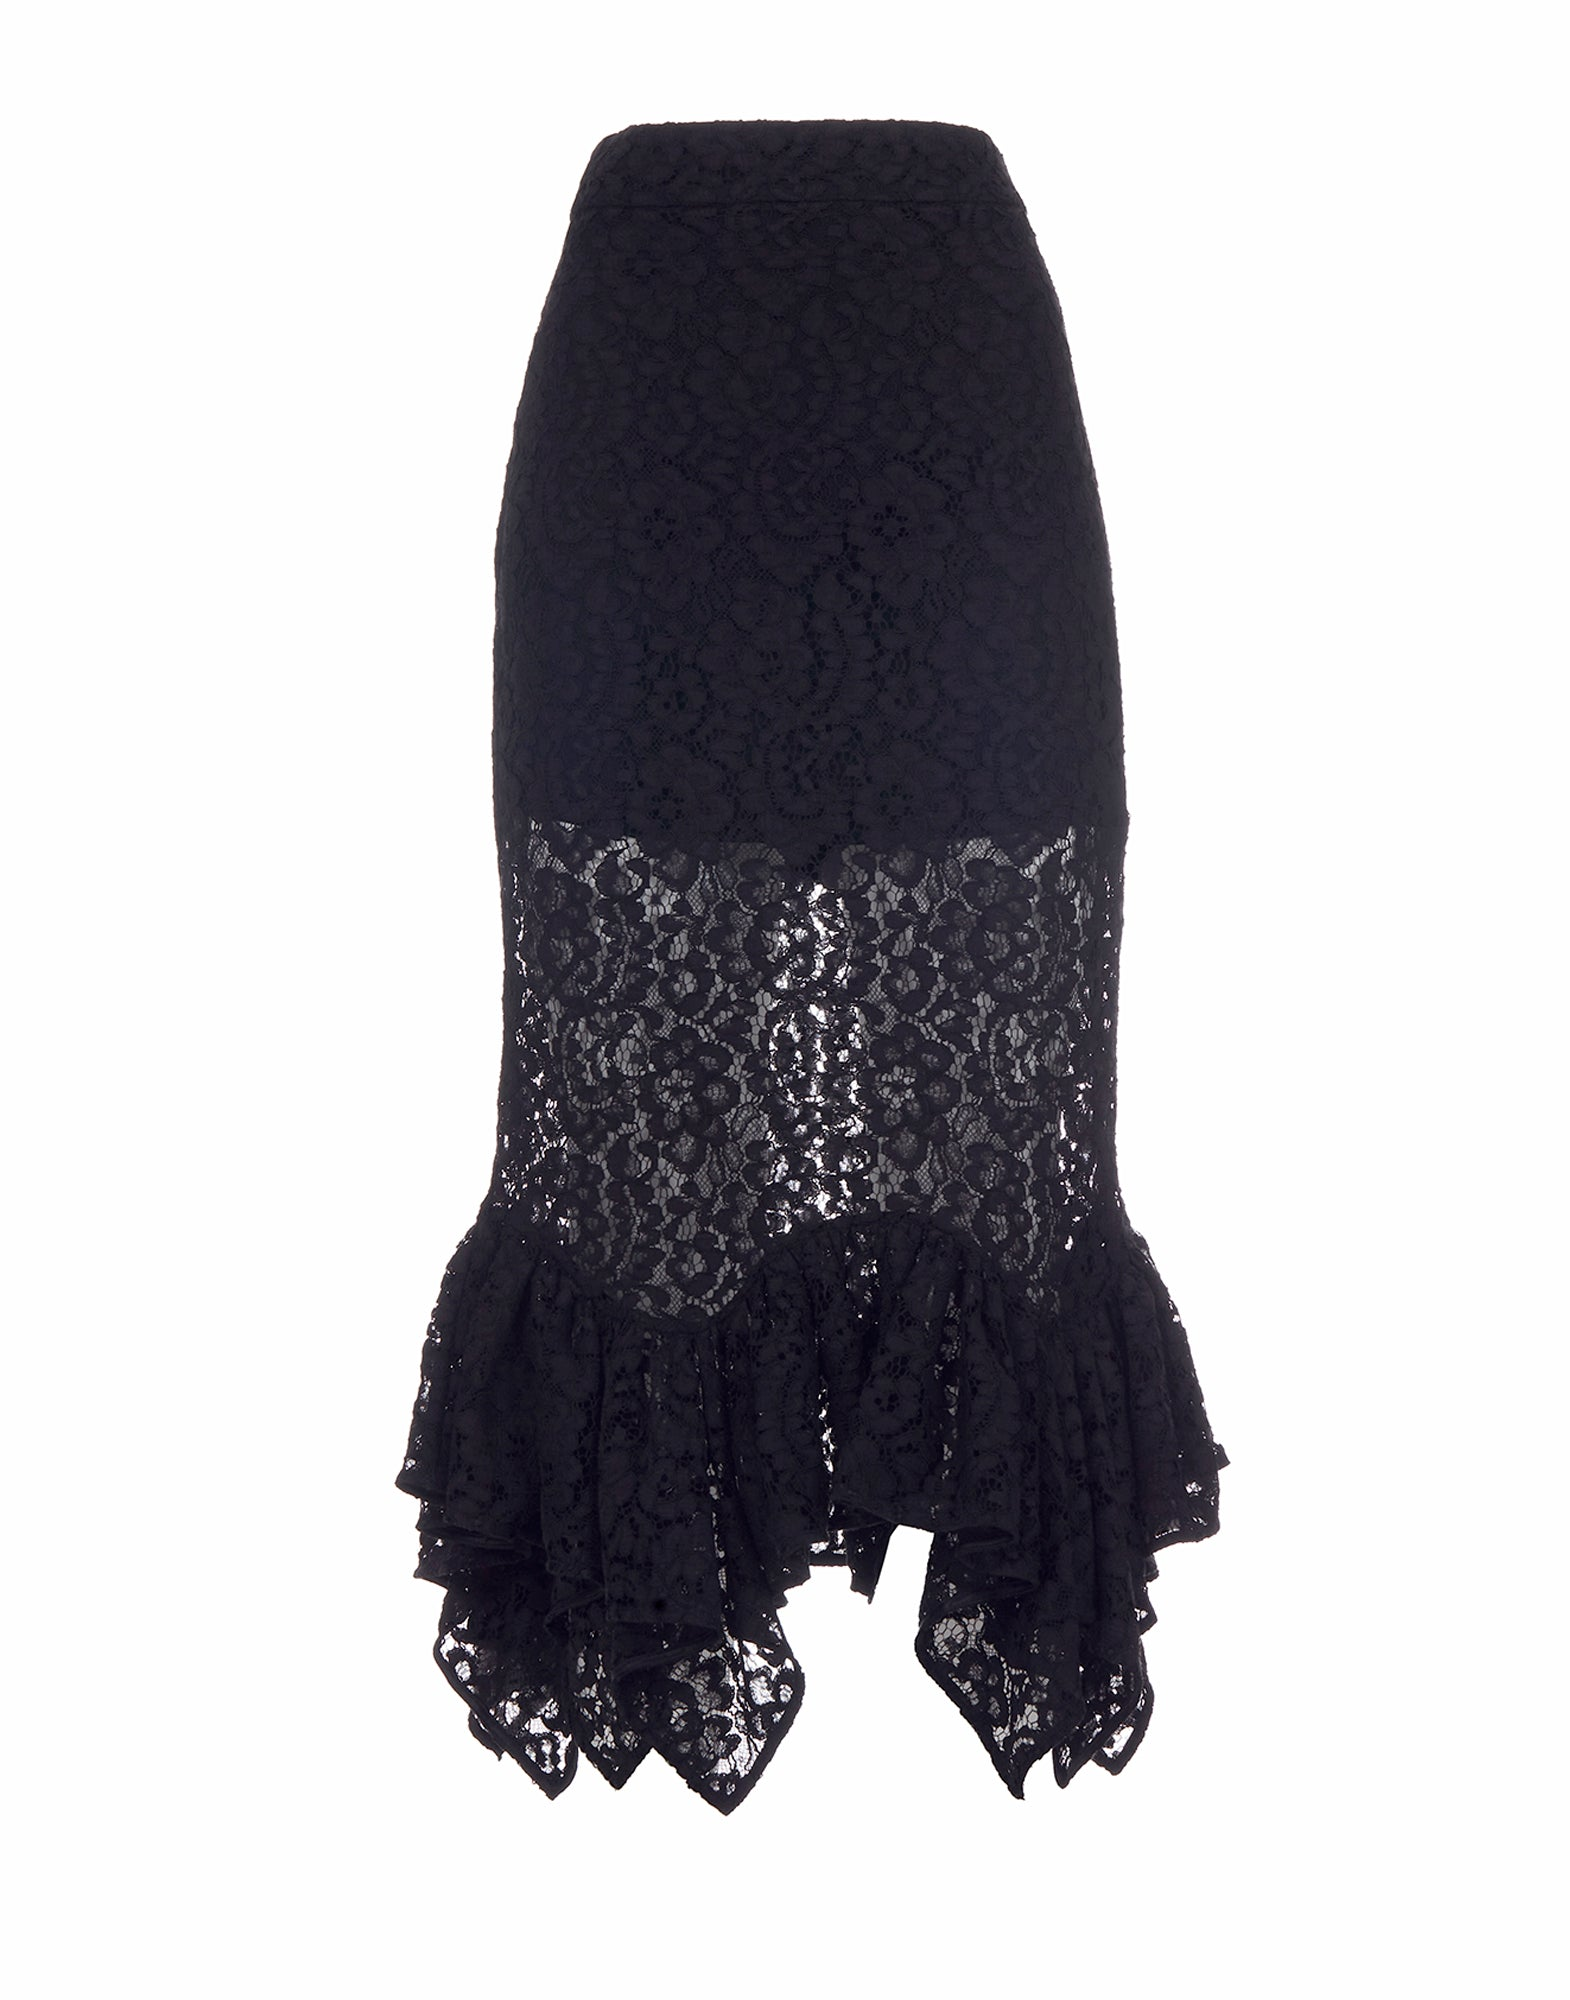 Black skirt in lace - NEW COLLECTION